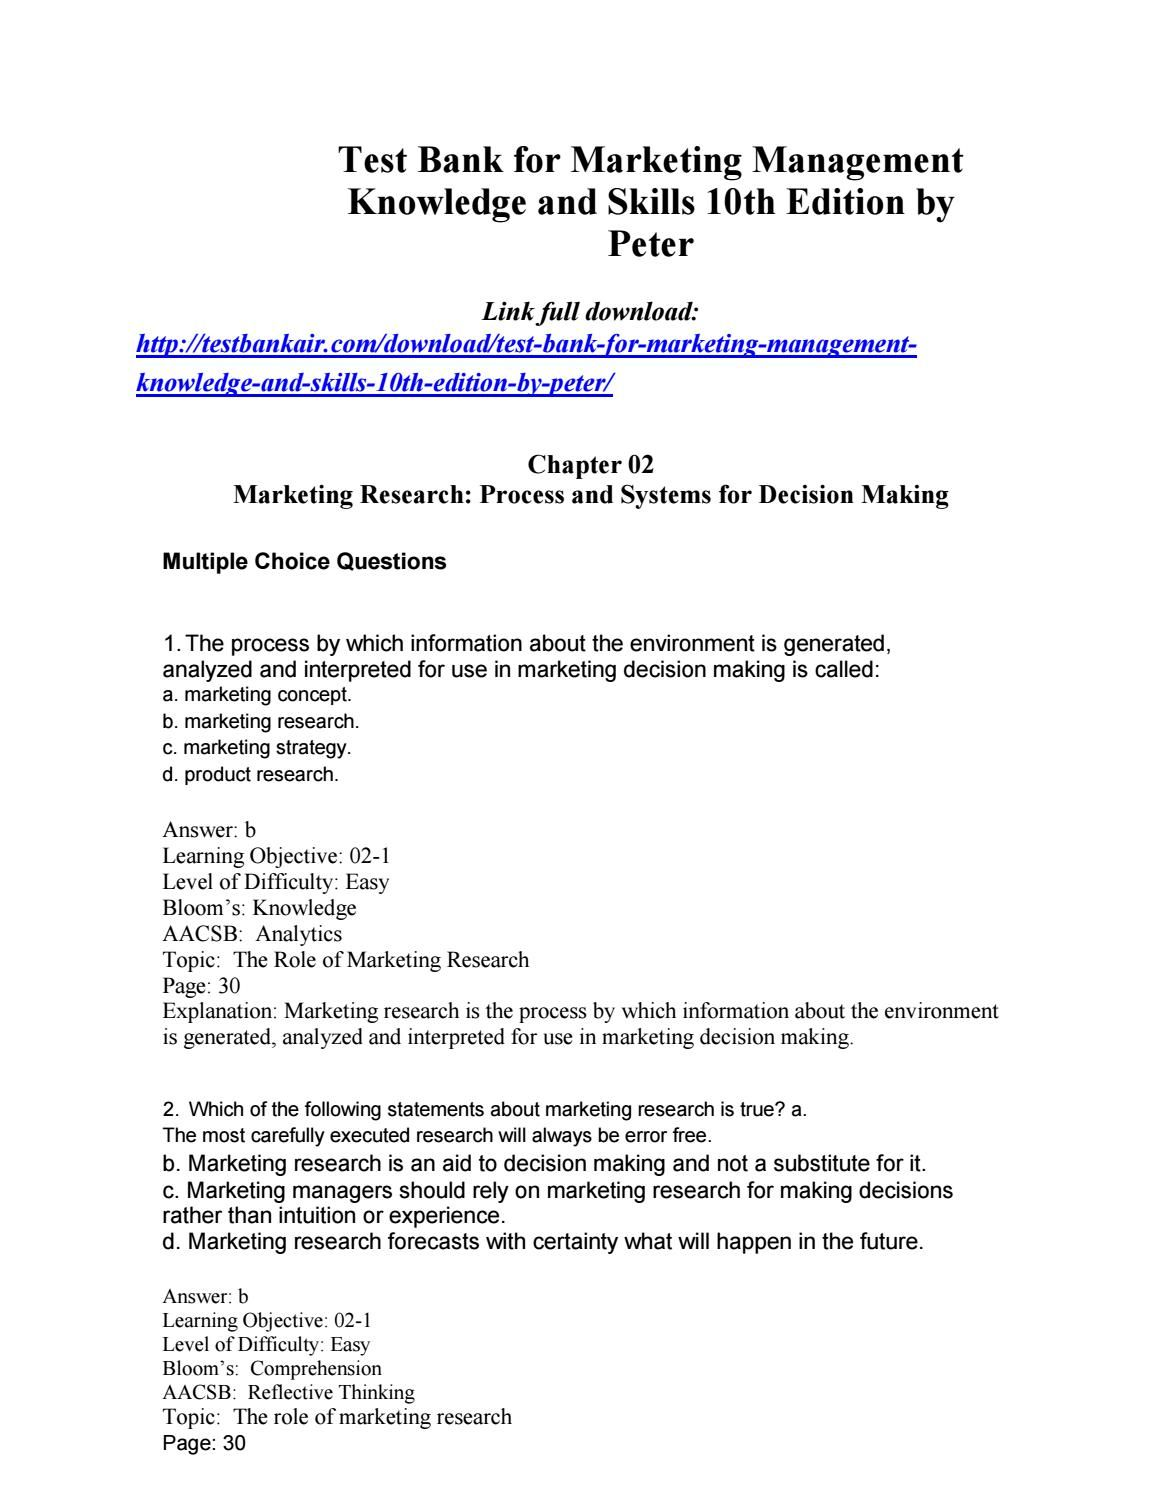 Download test bank for medical sociology 12th edition by cockerham ...